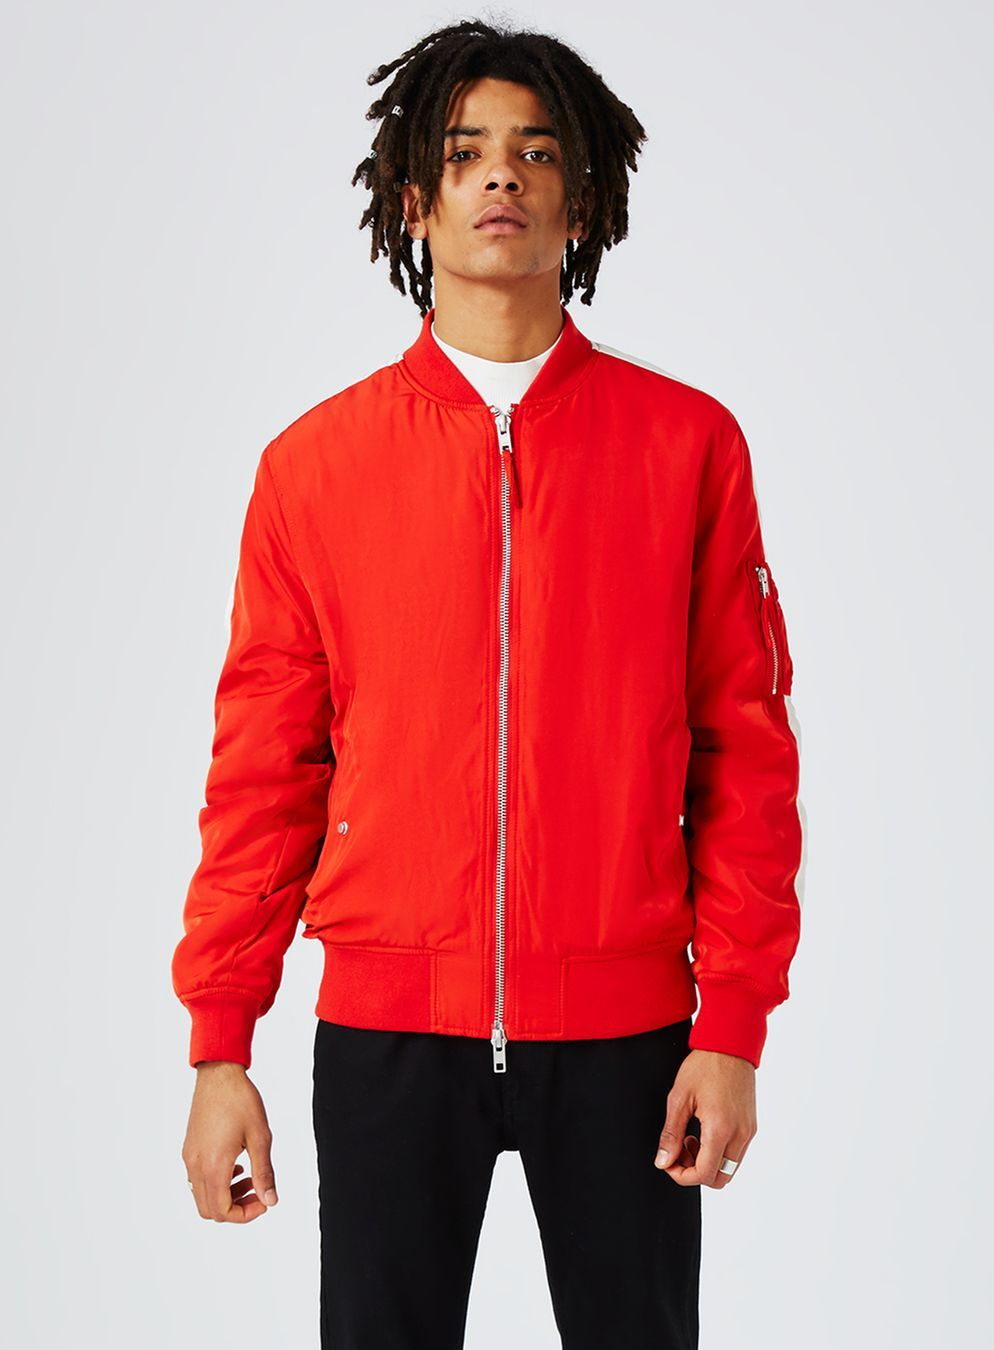 Red And White Stripe Ma1 Bomber Jacket New This Week New In Topman Bomber Jacket Topman Red And White Stripes [ 1350 x 994 Pixel ]